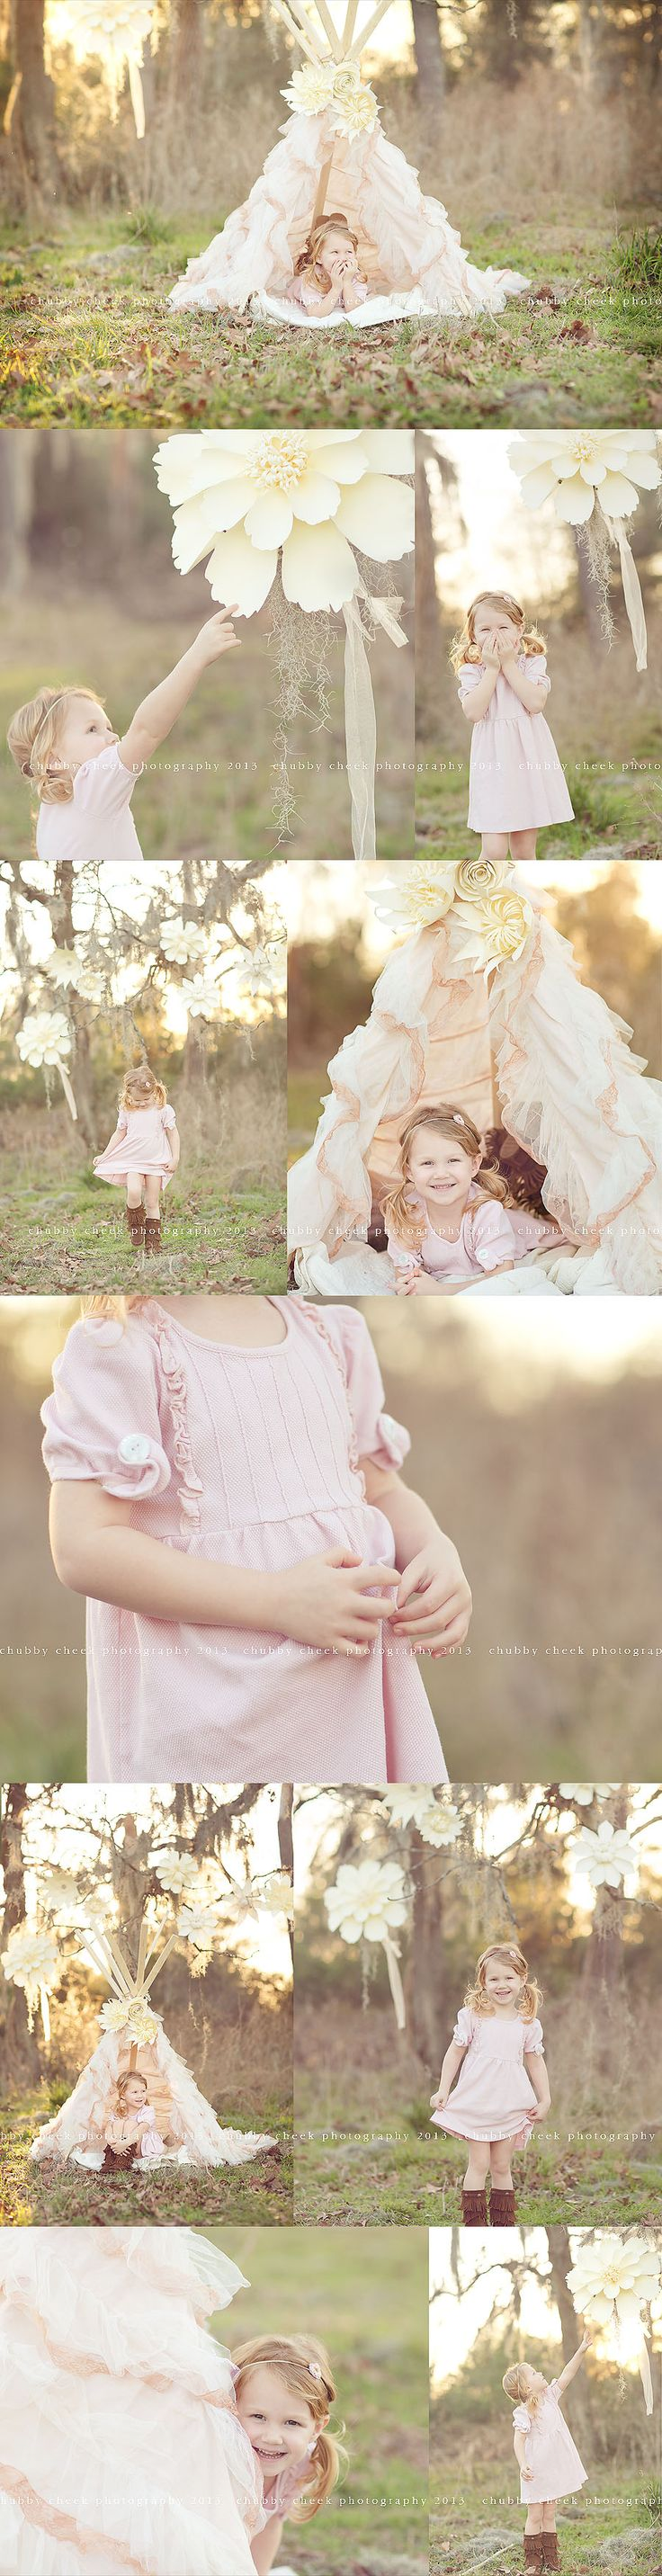 Chubby Cheek Photography Houston, TX Natural Light Photographer » Houston Baby…